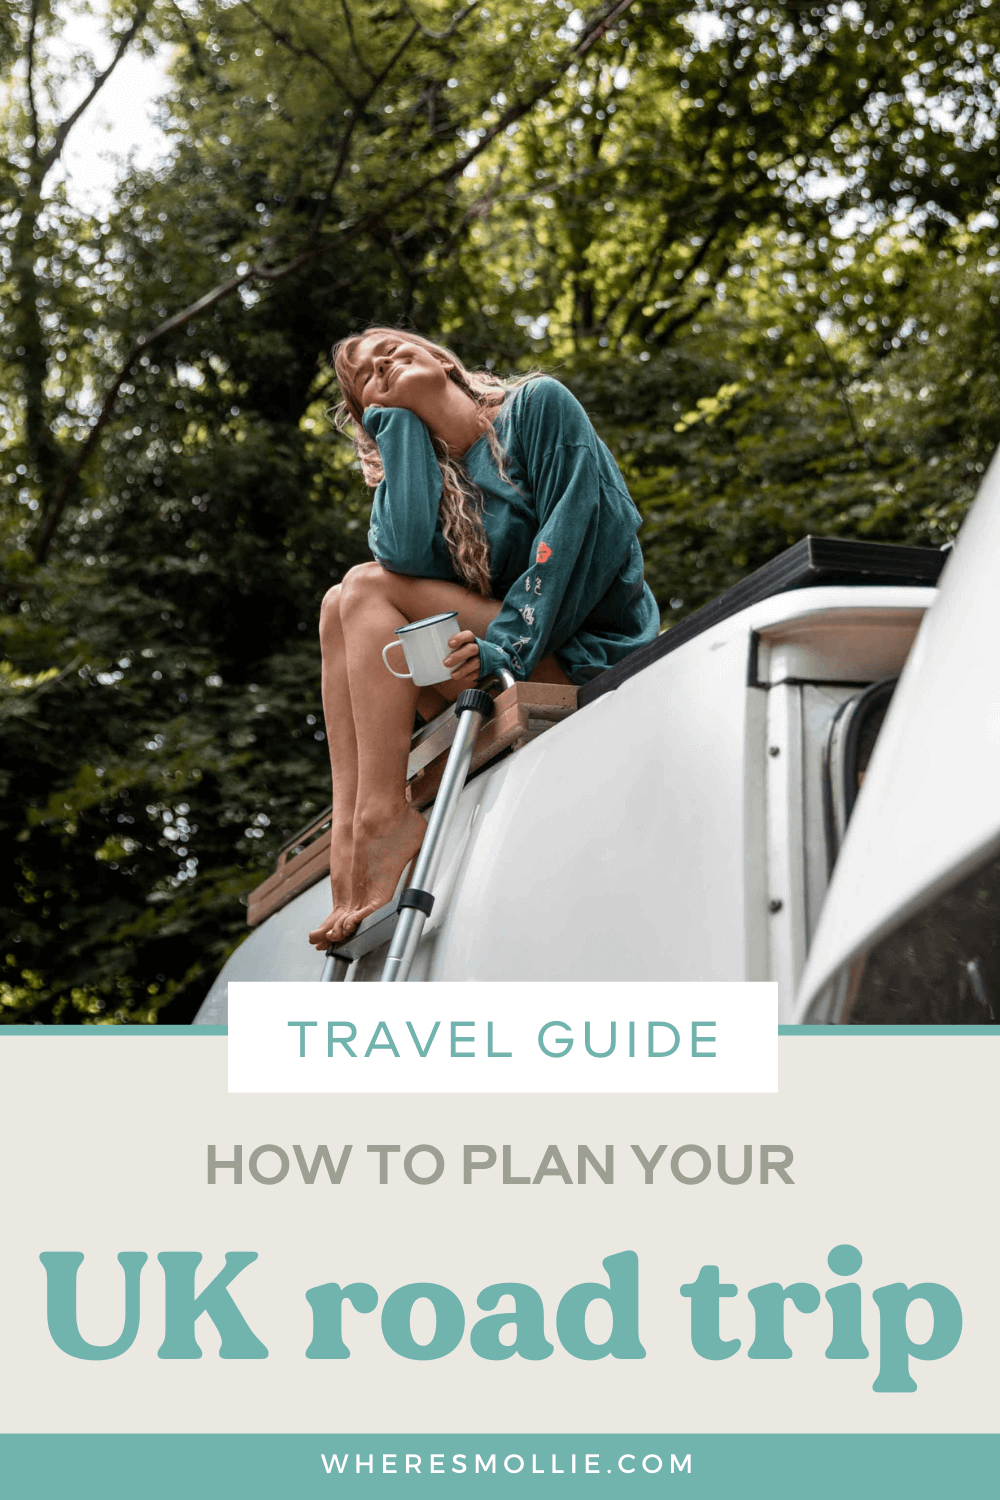 The ultimate guide to planning a UK road trip